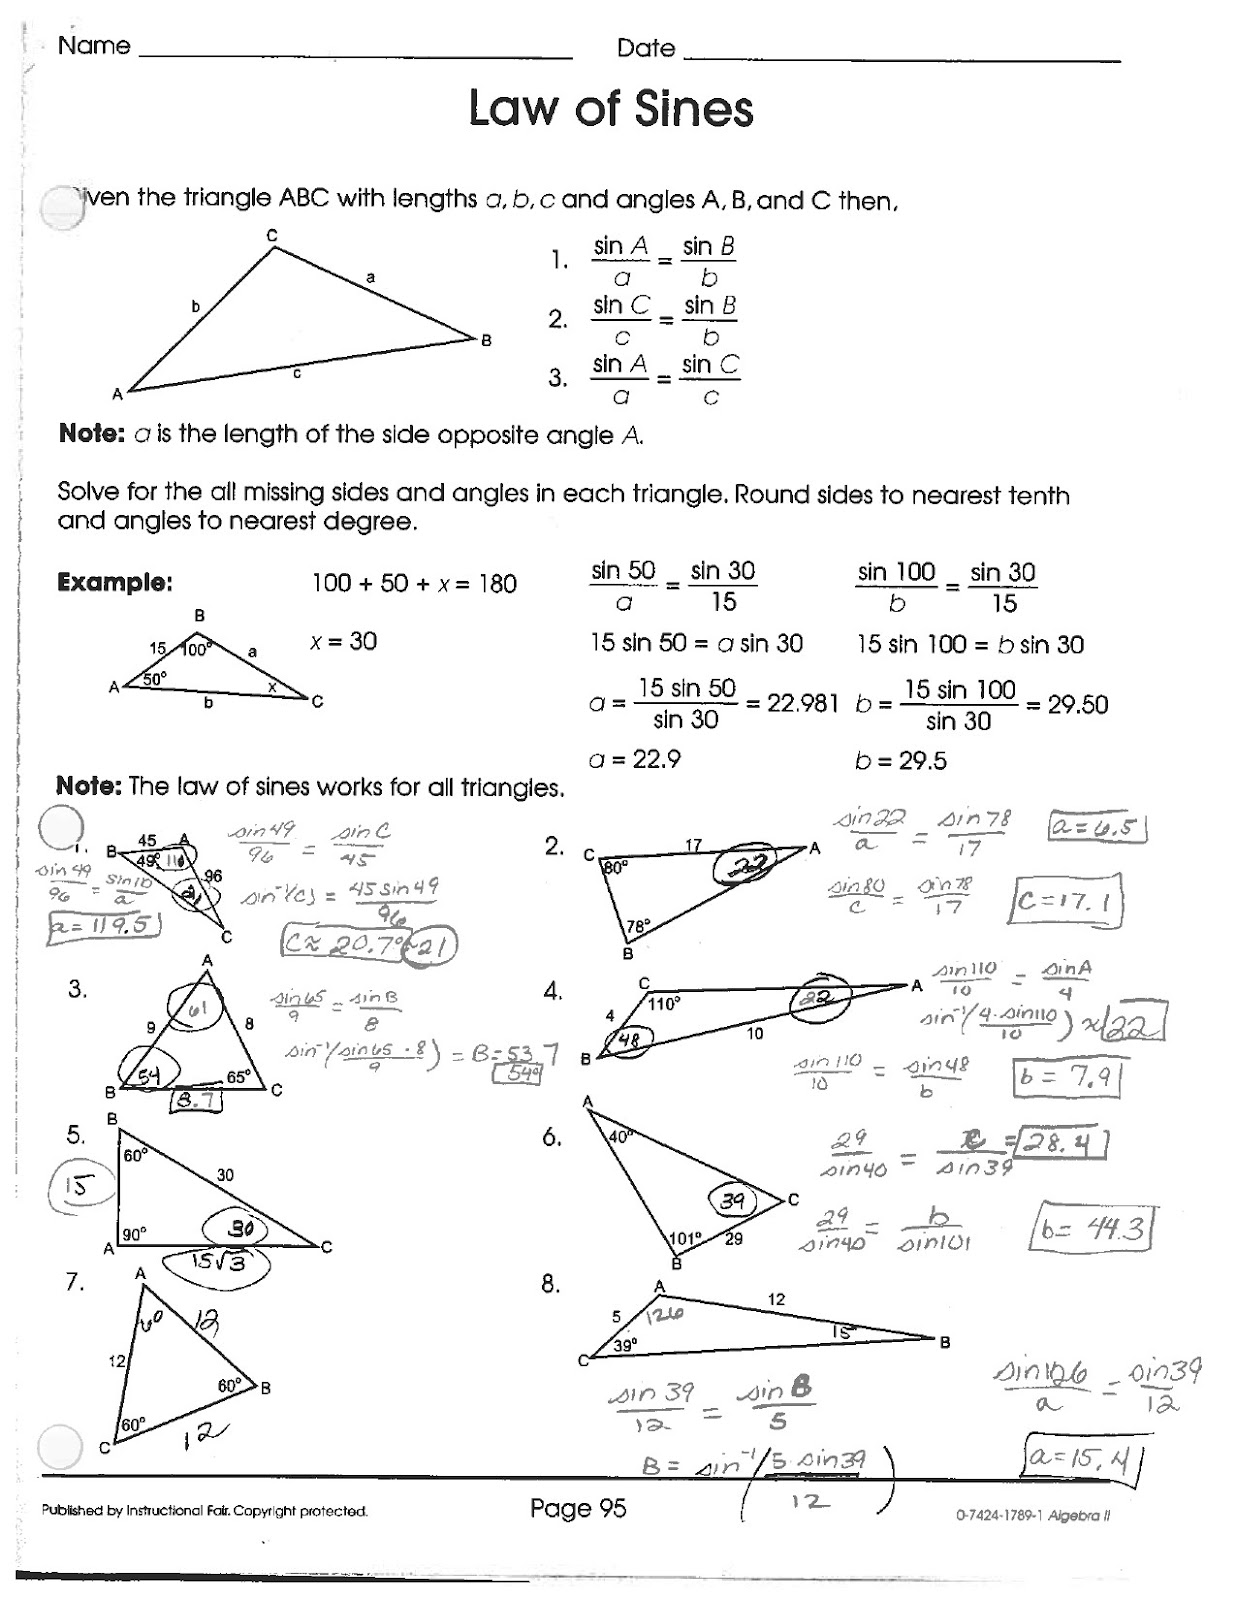 Free Worksheet Law Of Sines Worksheet law of sines and cosines worksheet workbook site worksheet